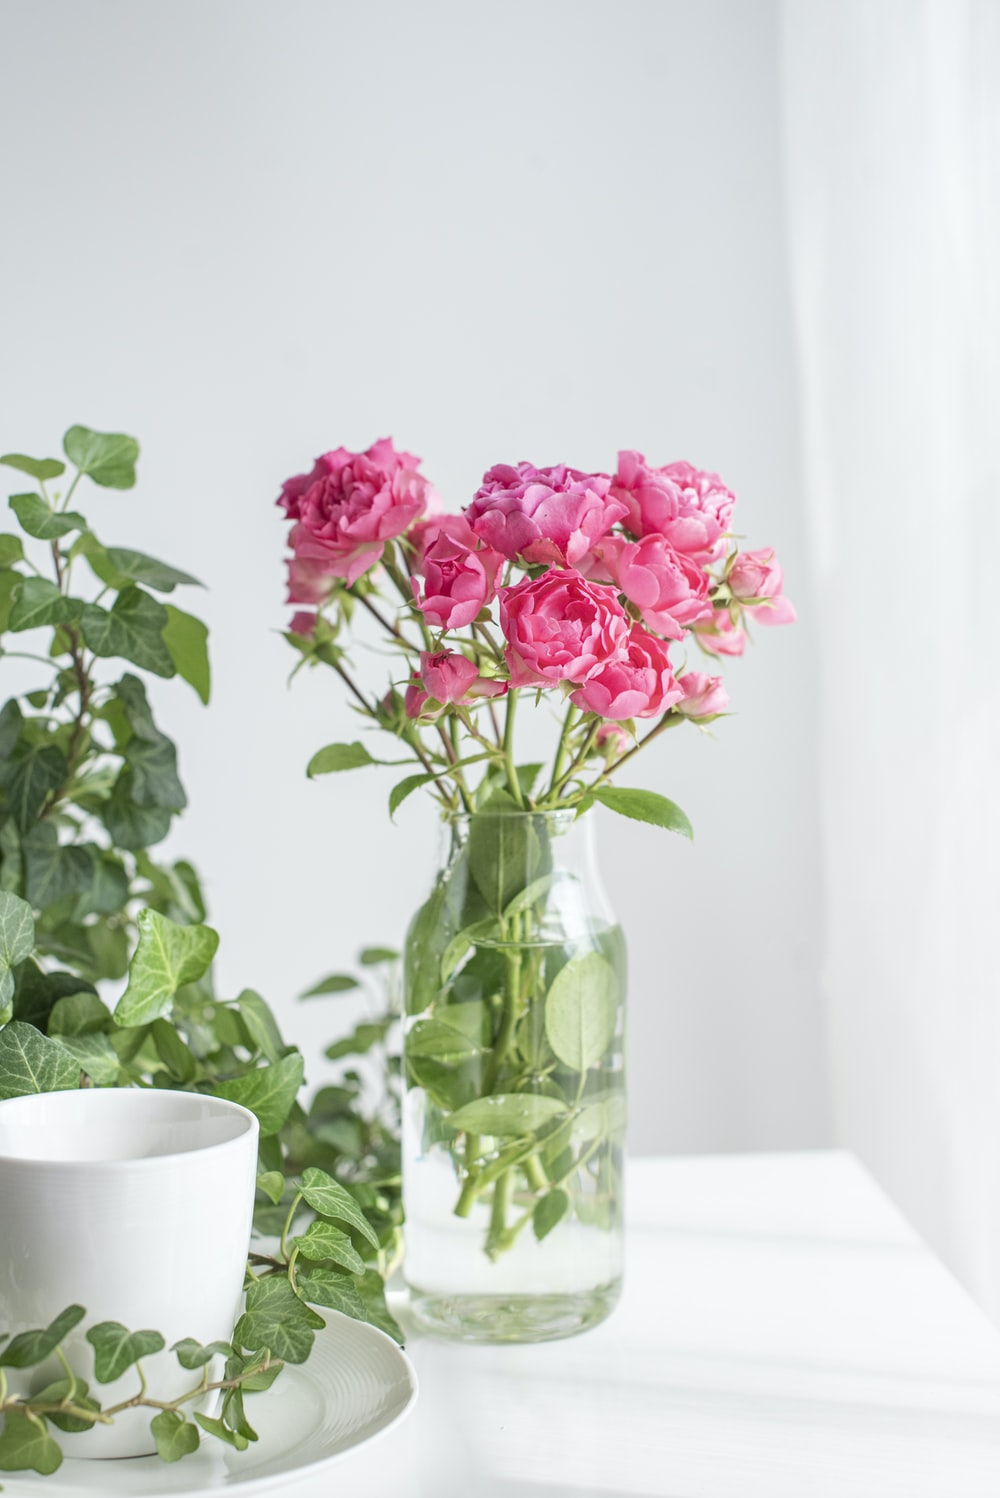 pink flowers in clear glass vase